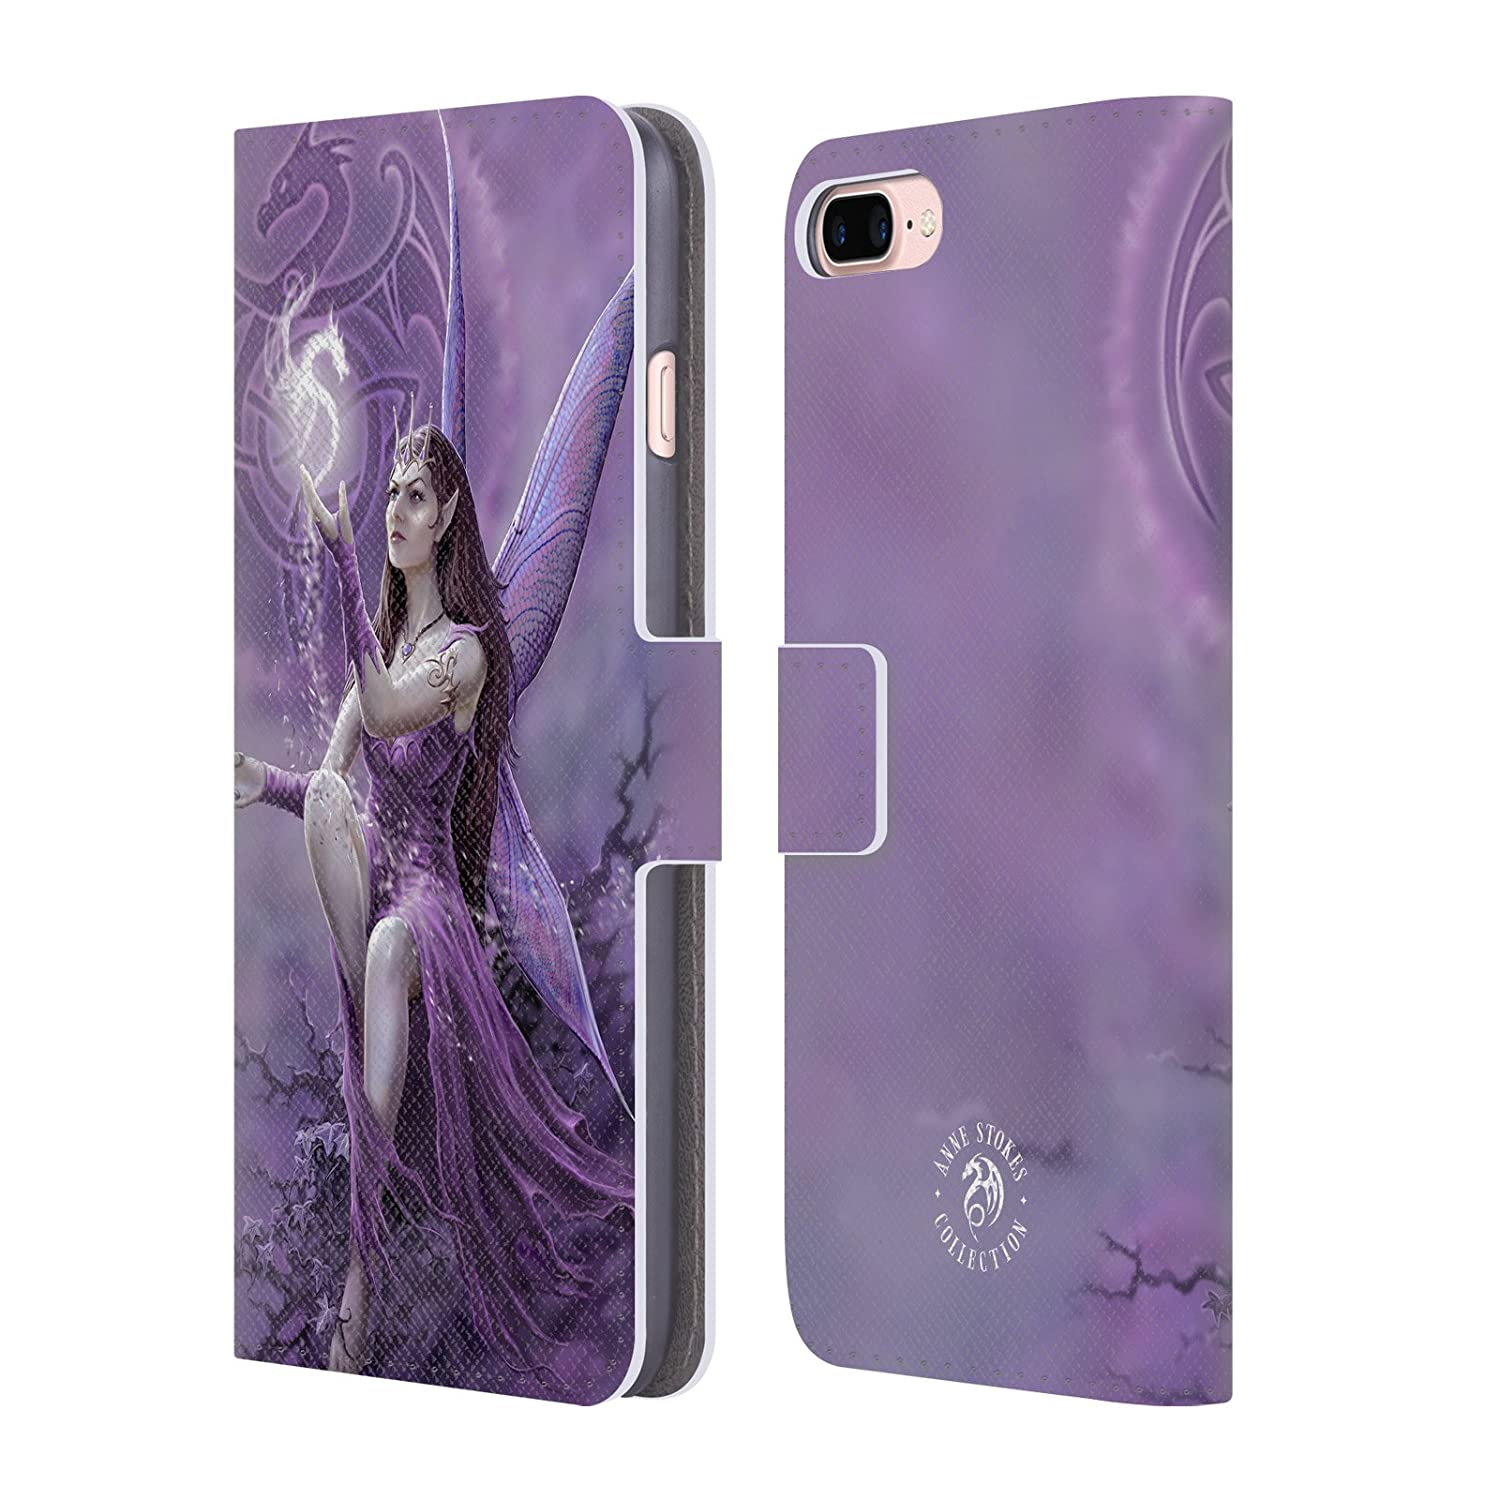 anne stokes iphone 8 case